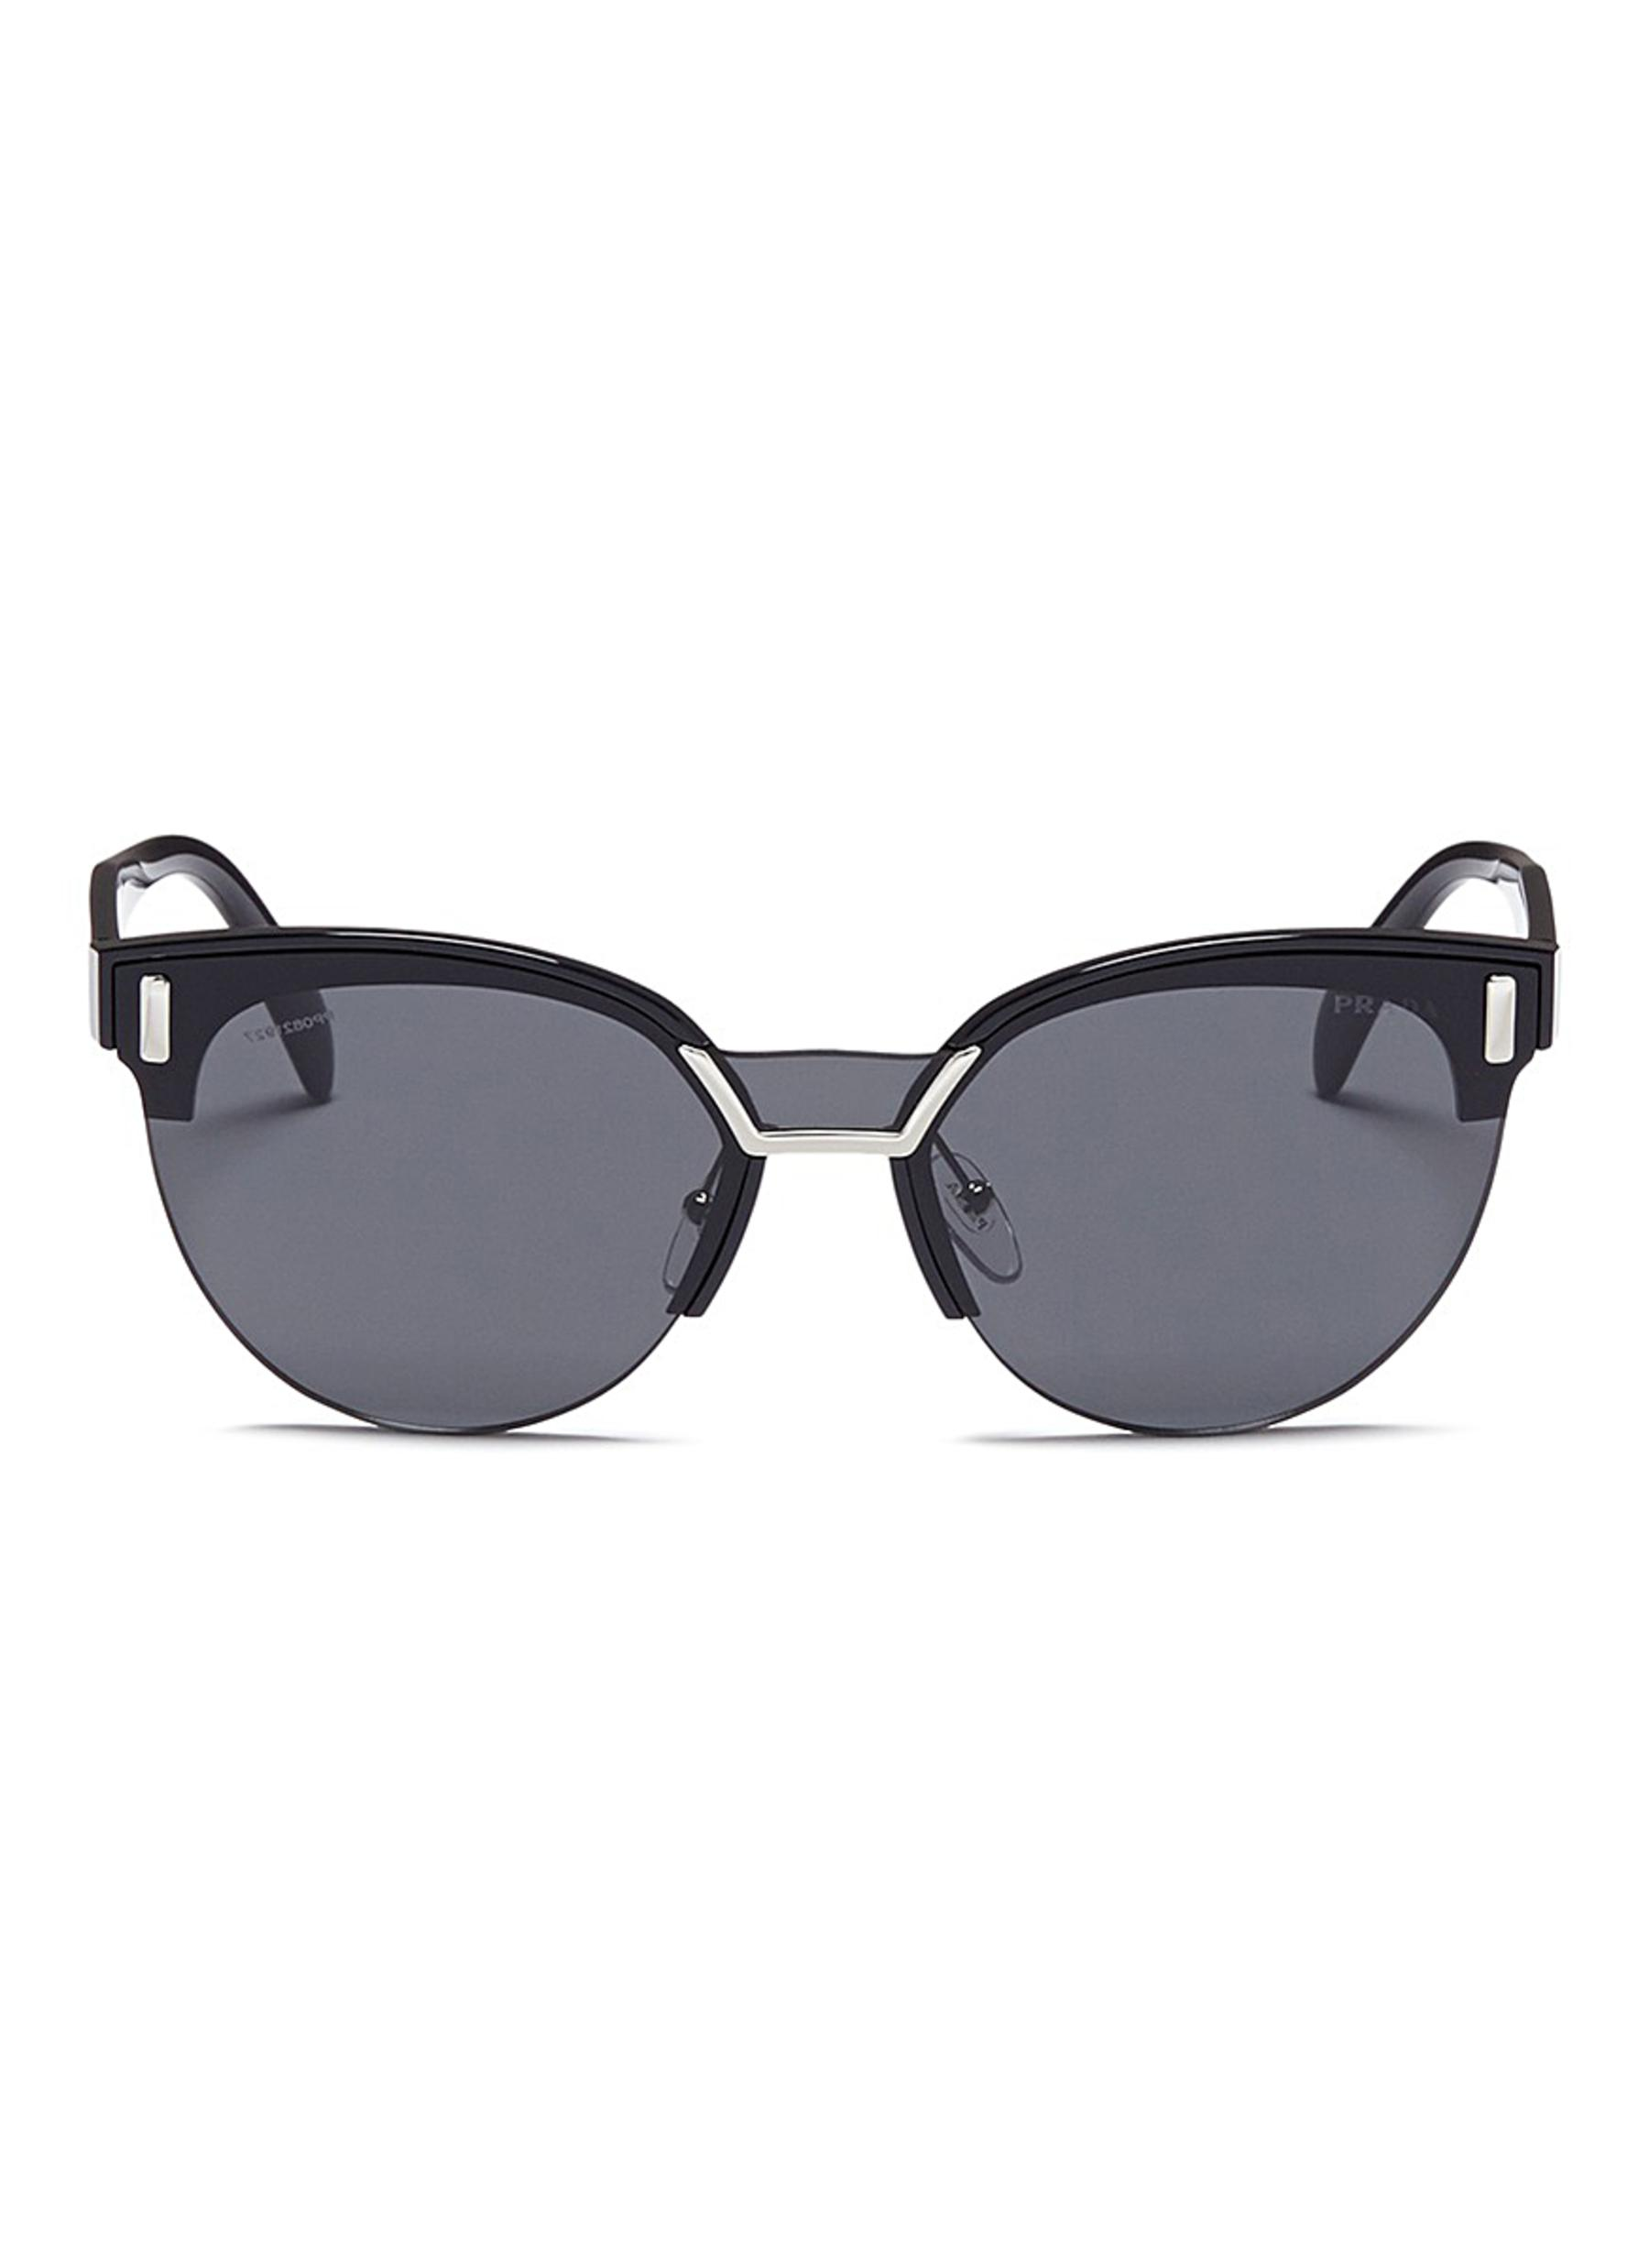 aed5903720 ... switzerland main view click to enlarge prada acetate brow bar round  sunglasses 2ce51 faf54 ...